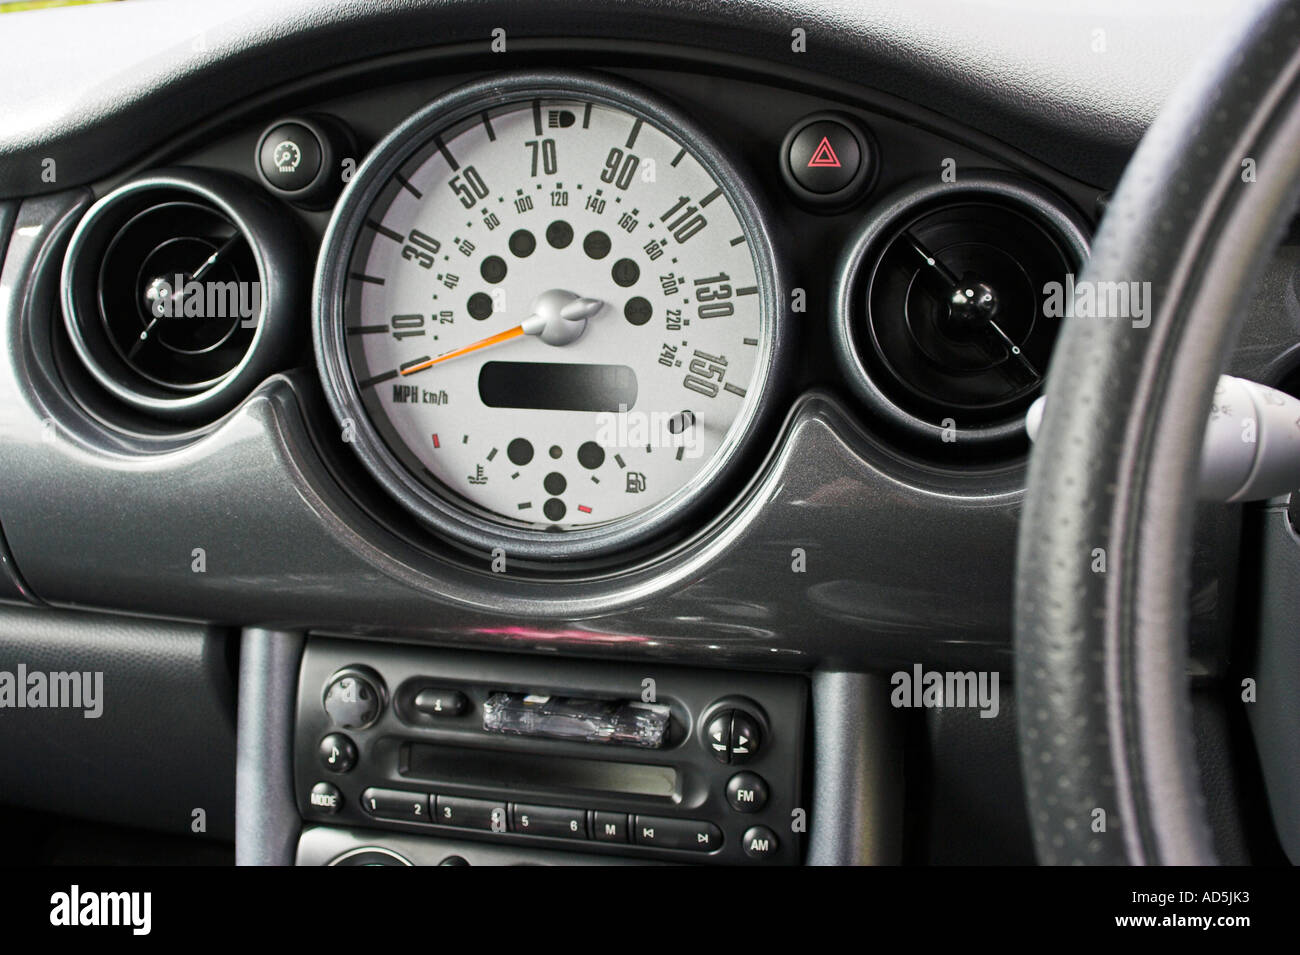 Mini Cooper Dashboard >> Dashboard of a Mini One car Stock Photo, Royalty Free Image: 7606962 - Alamy